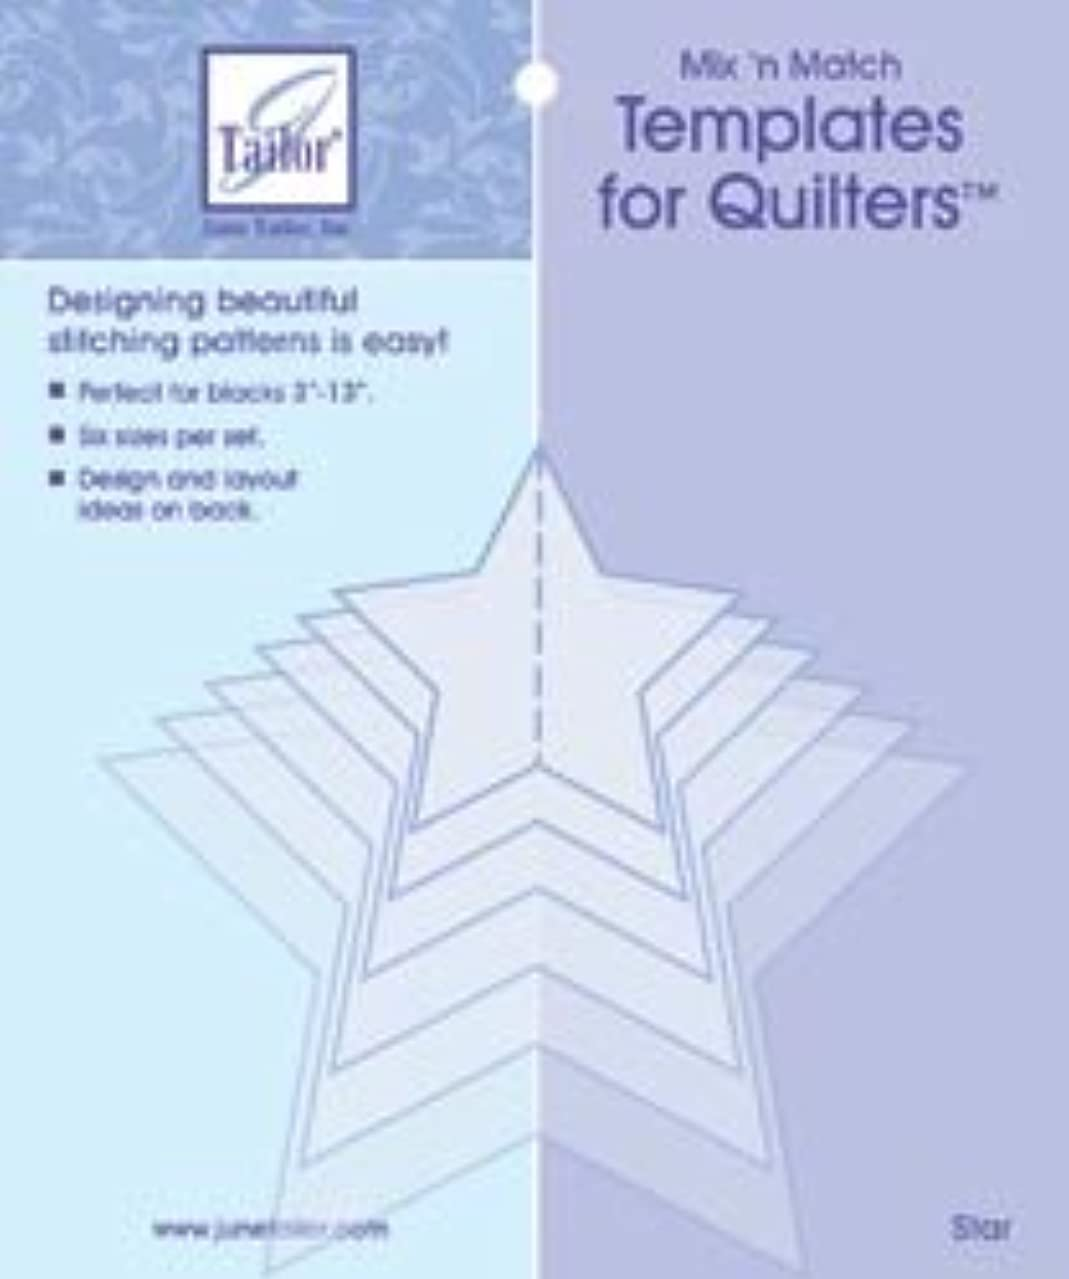 June Tailor 82931 Mixn Match Templates For Quilters 6-Pkg-Star